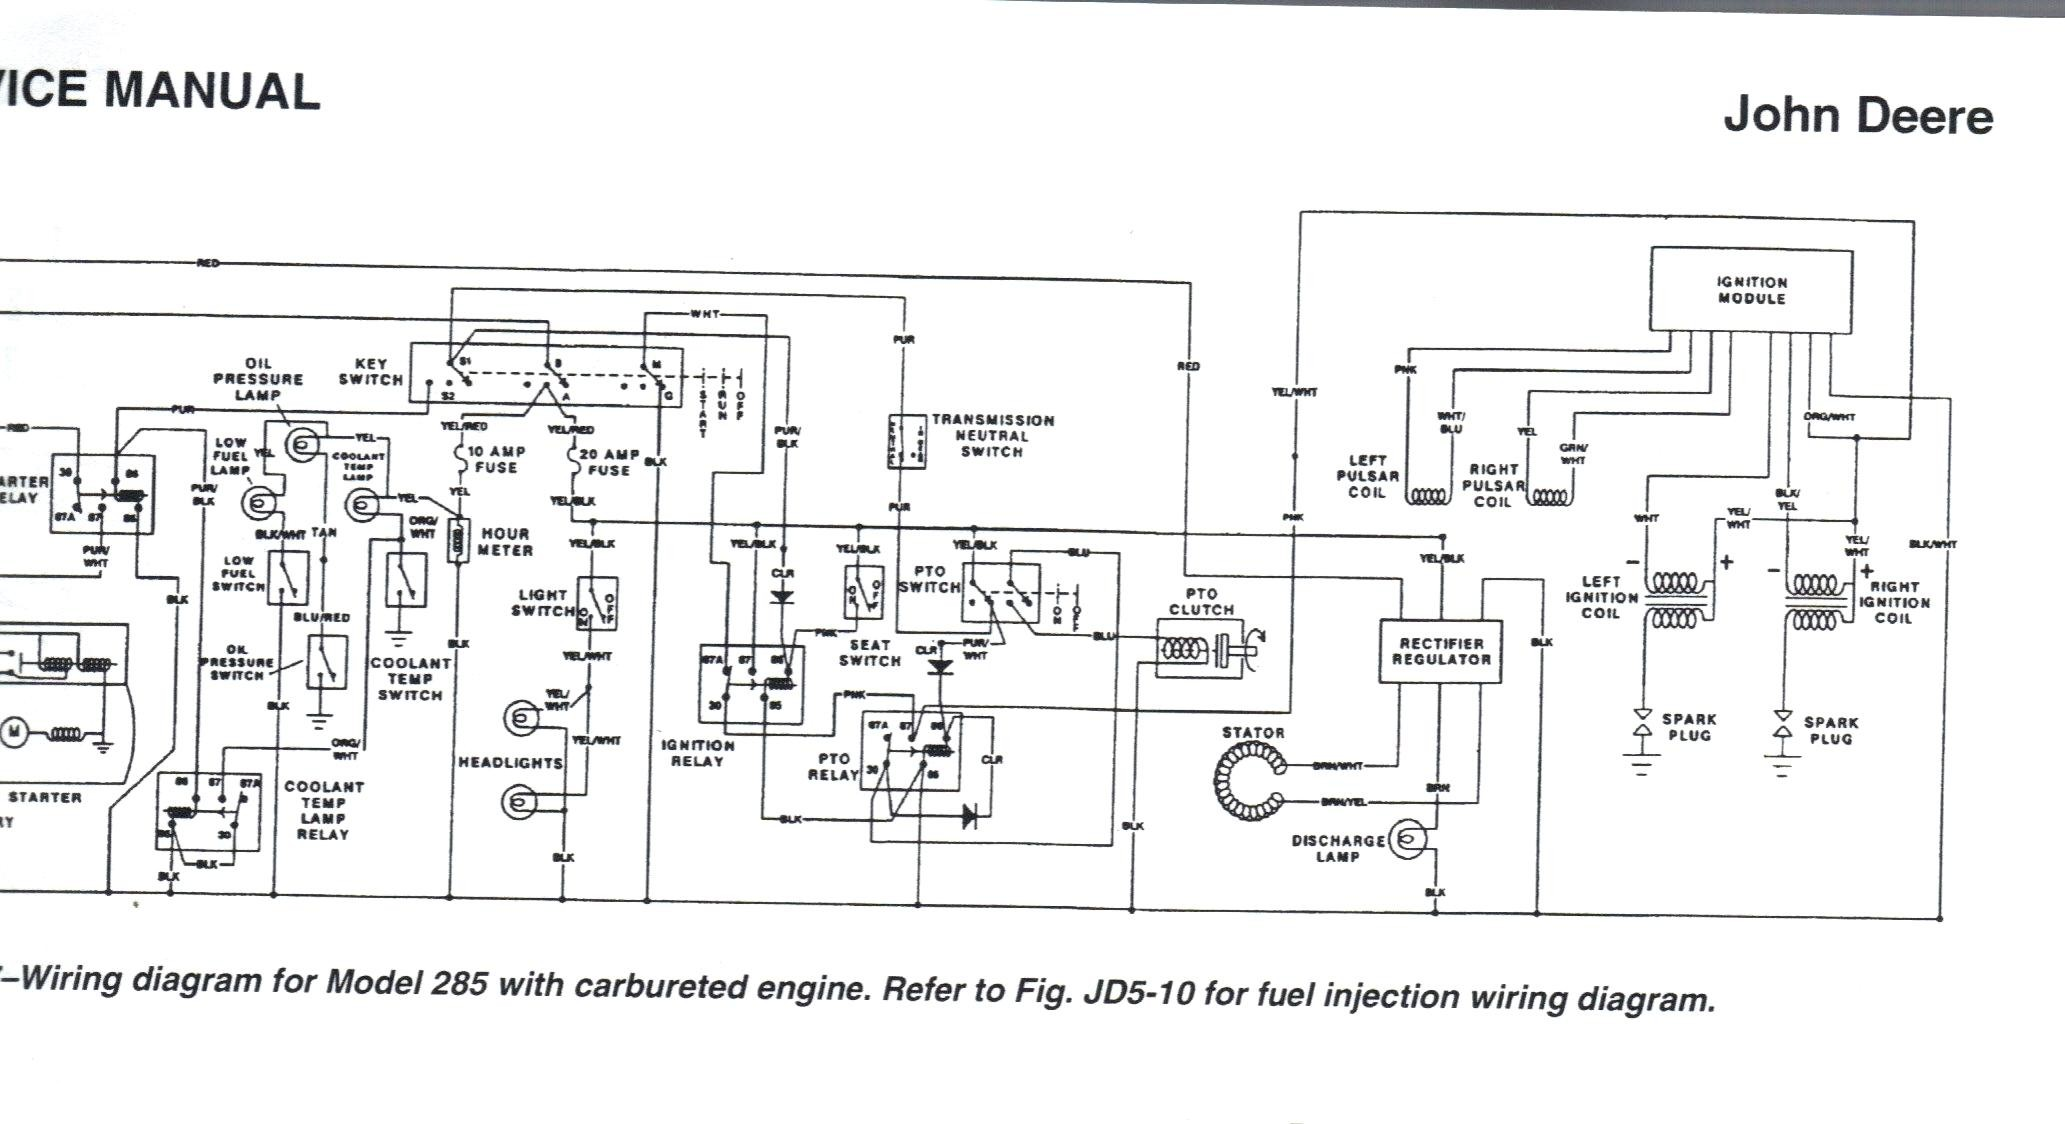 john deere 445 wiring diagram free download wiring diagrams pictures